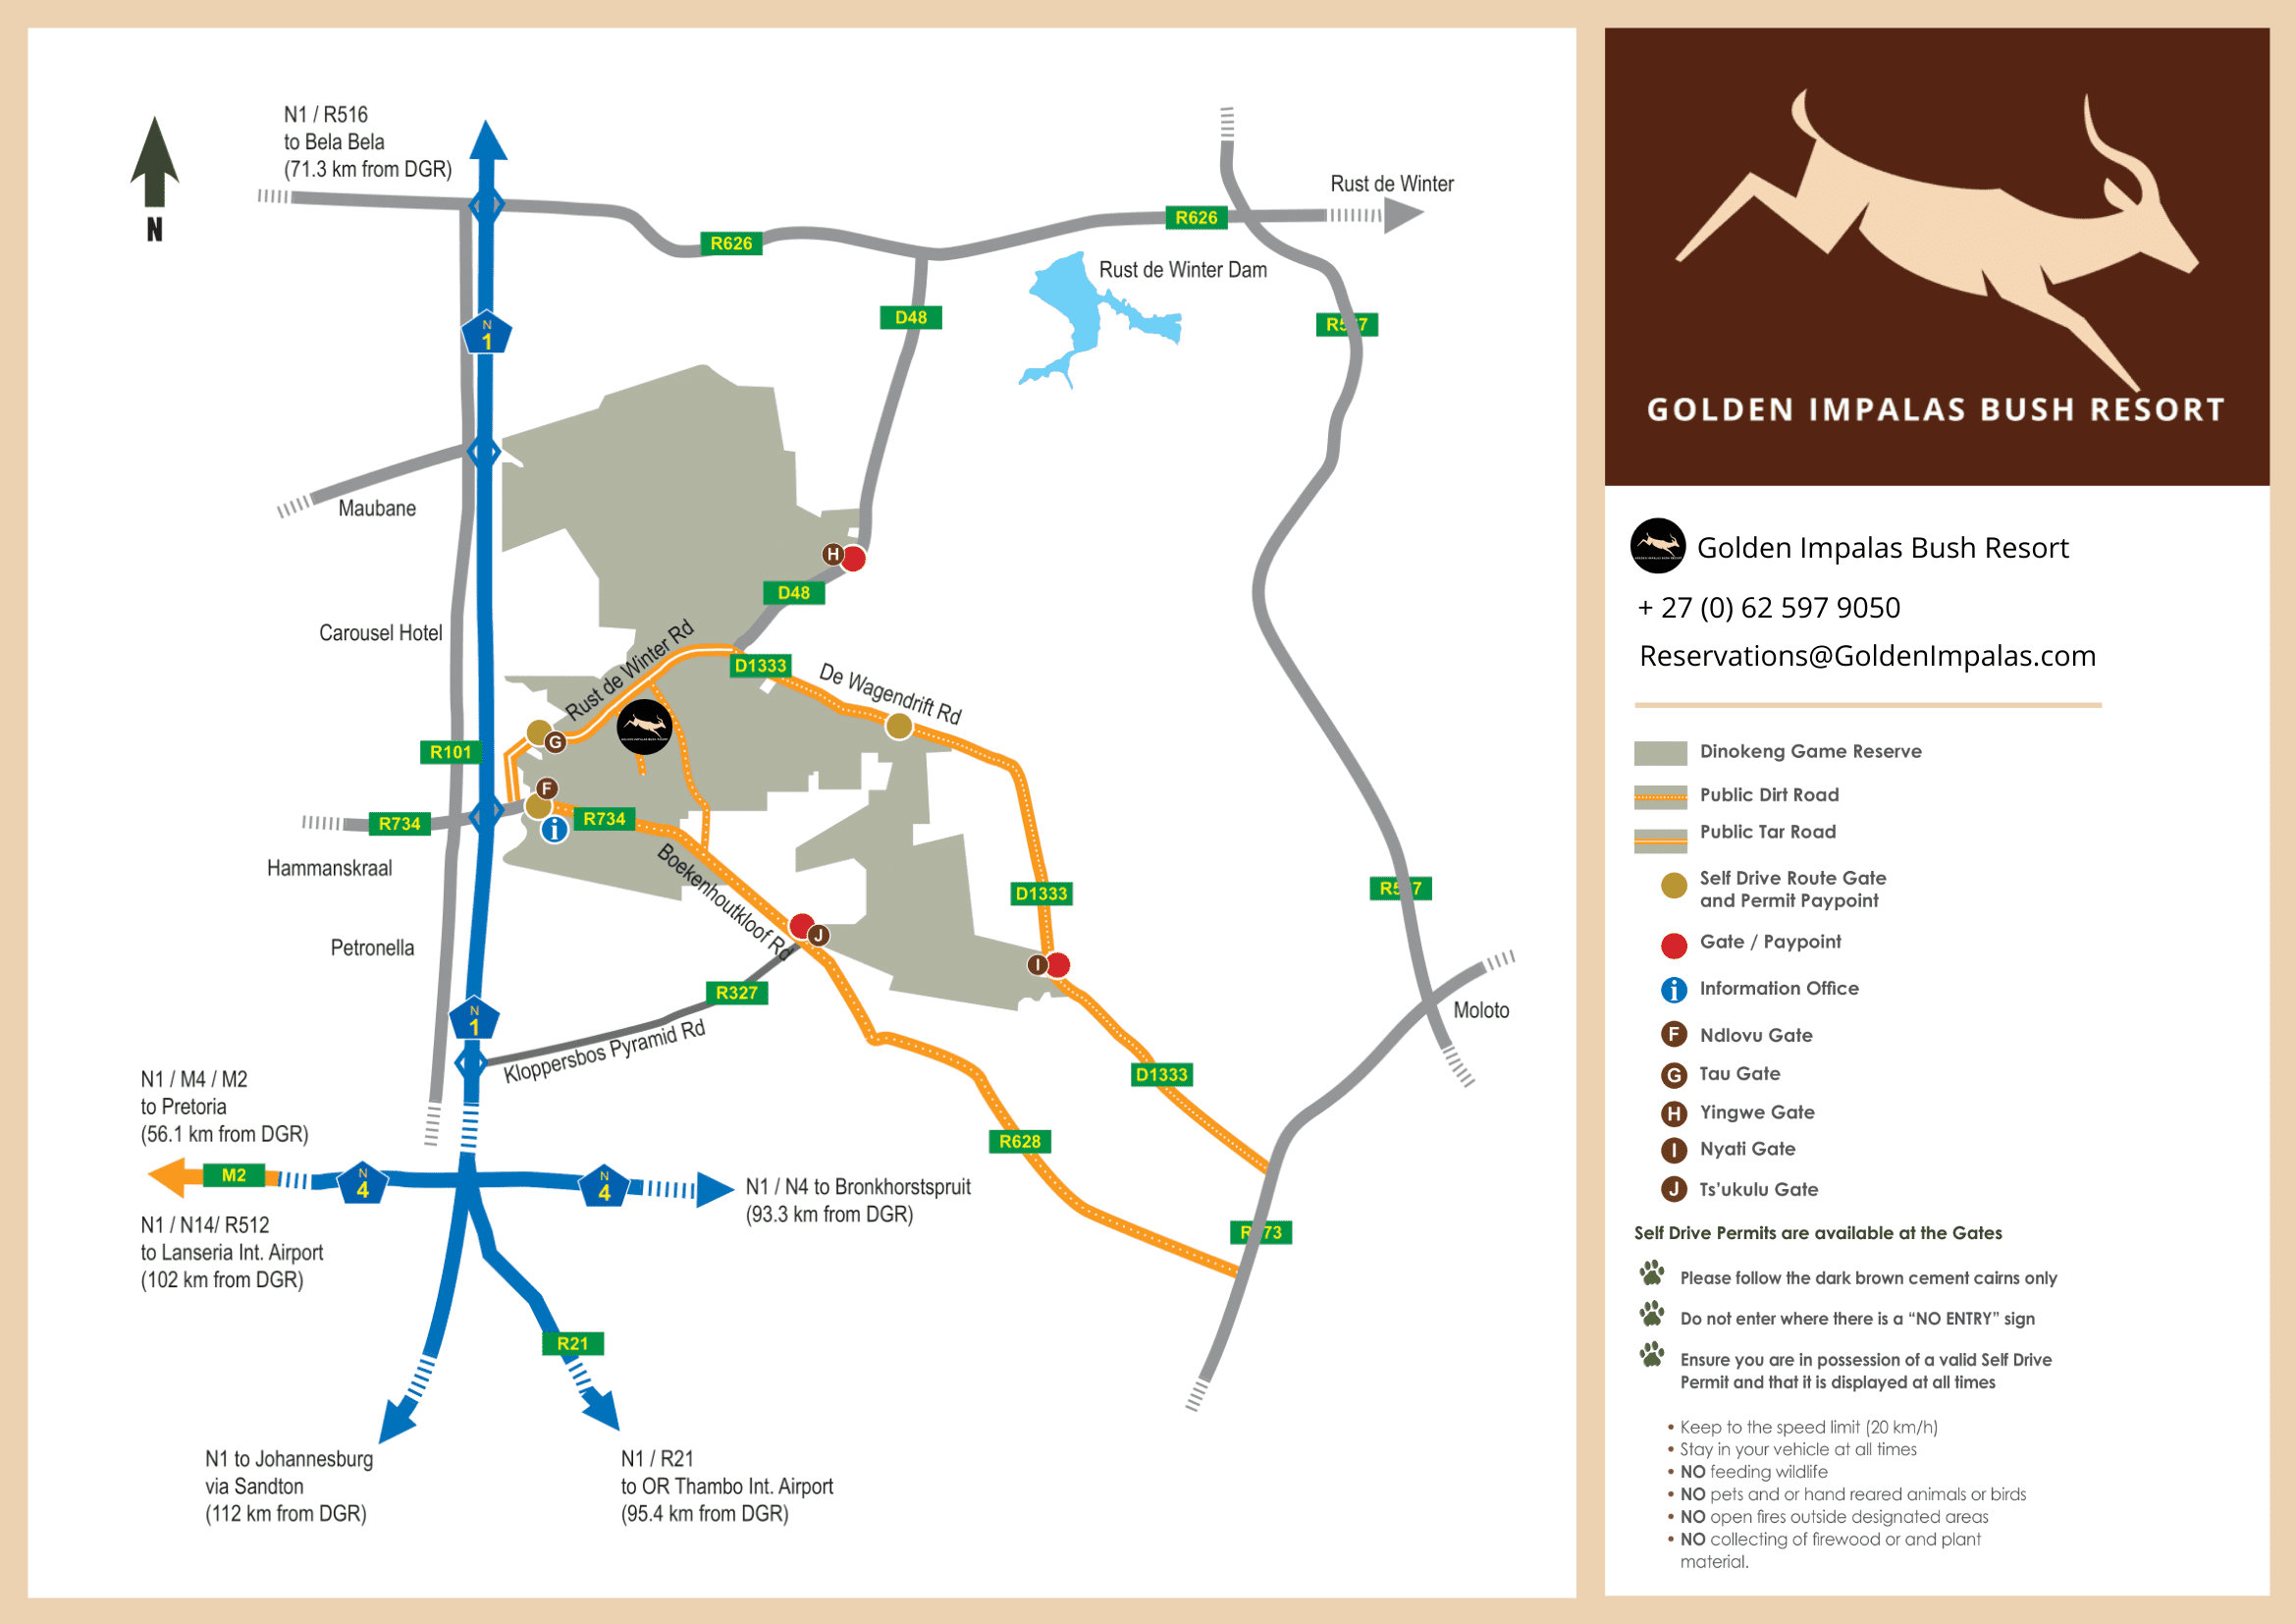 Dinokeng Game Reserve Map